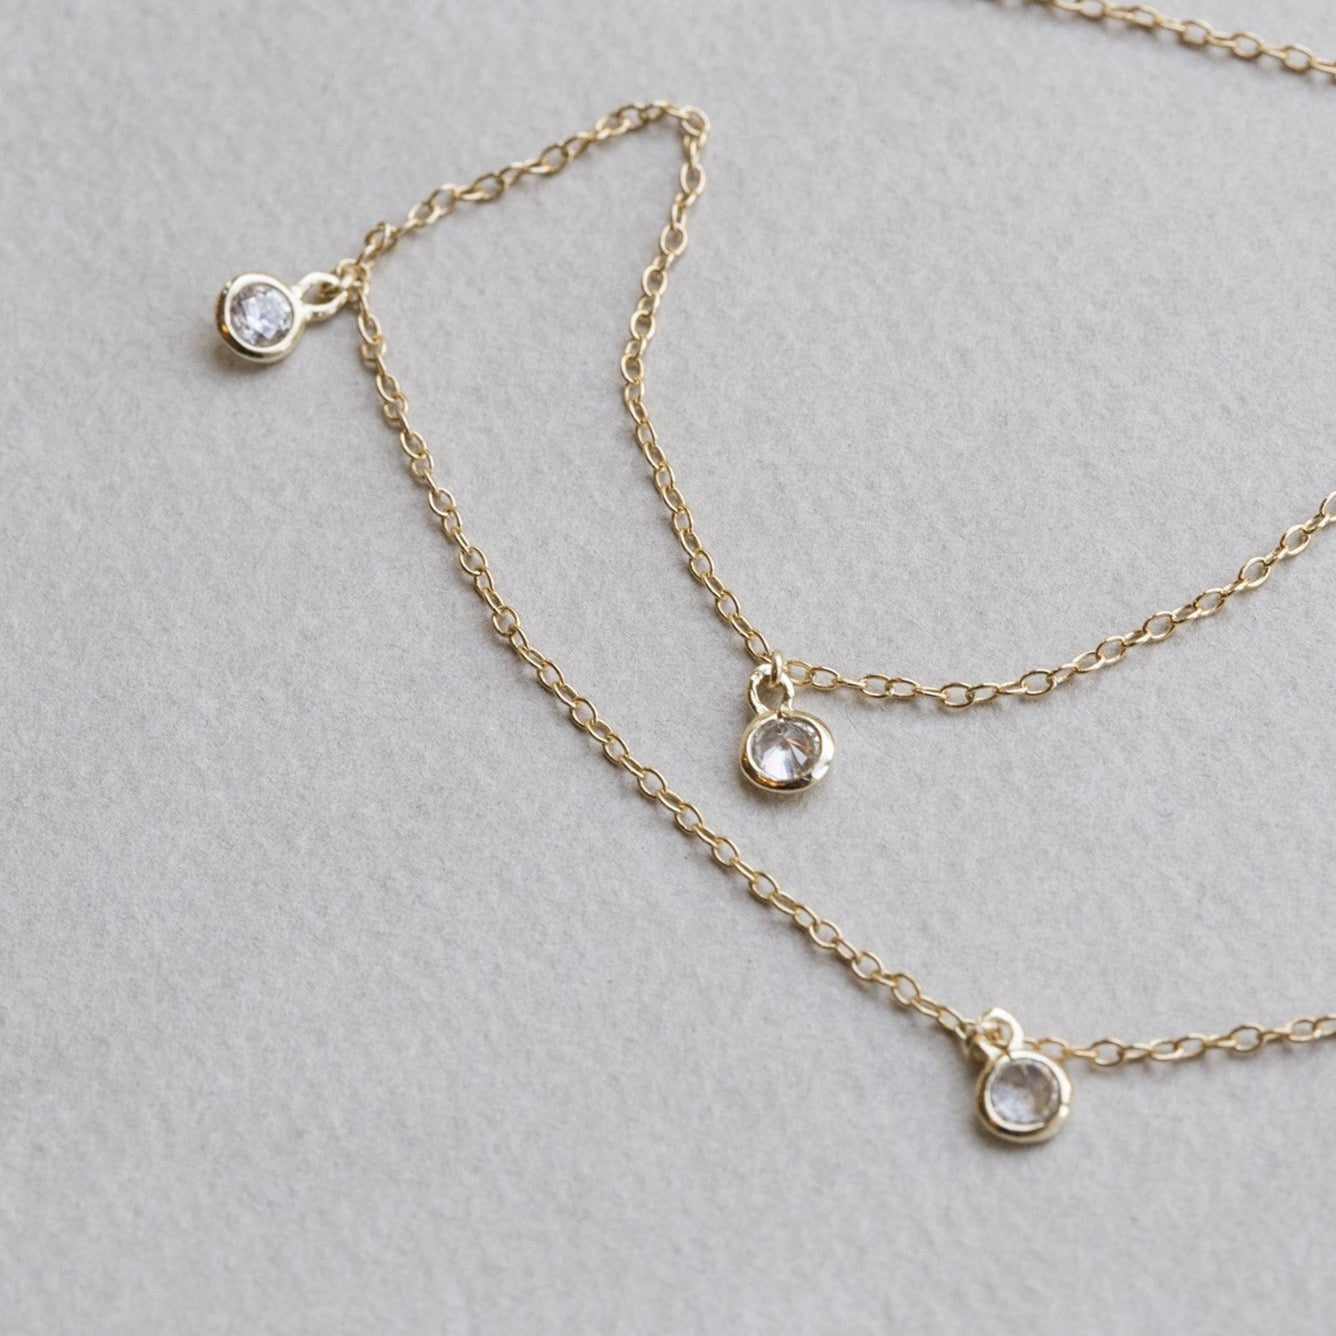 the length and the presence of clasp, allows this necklace to be layered on wrist